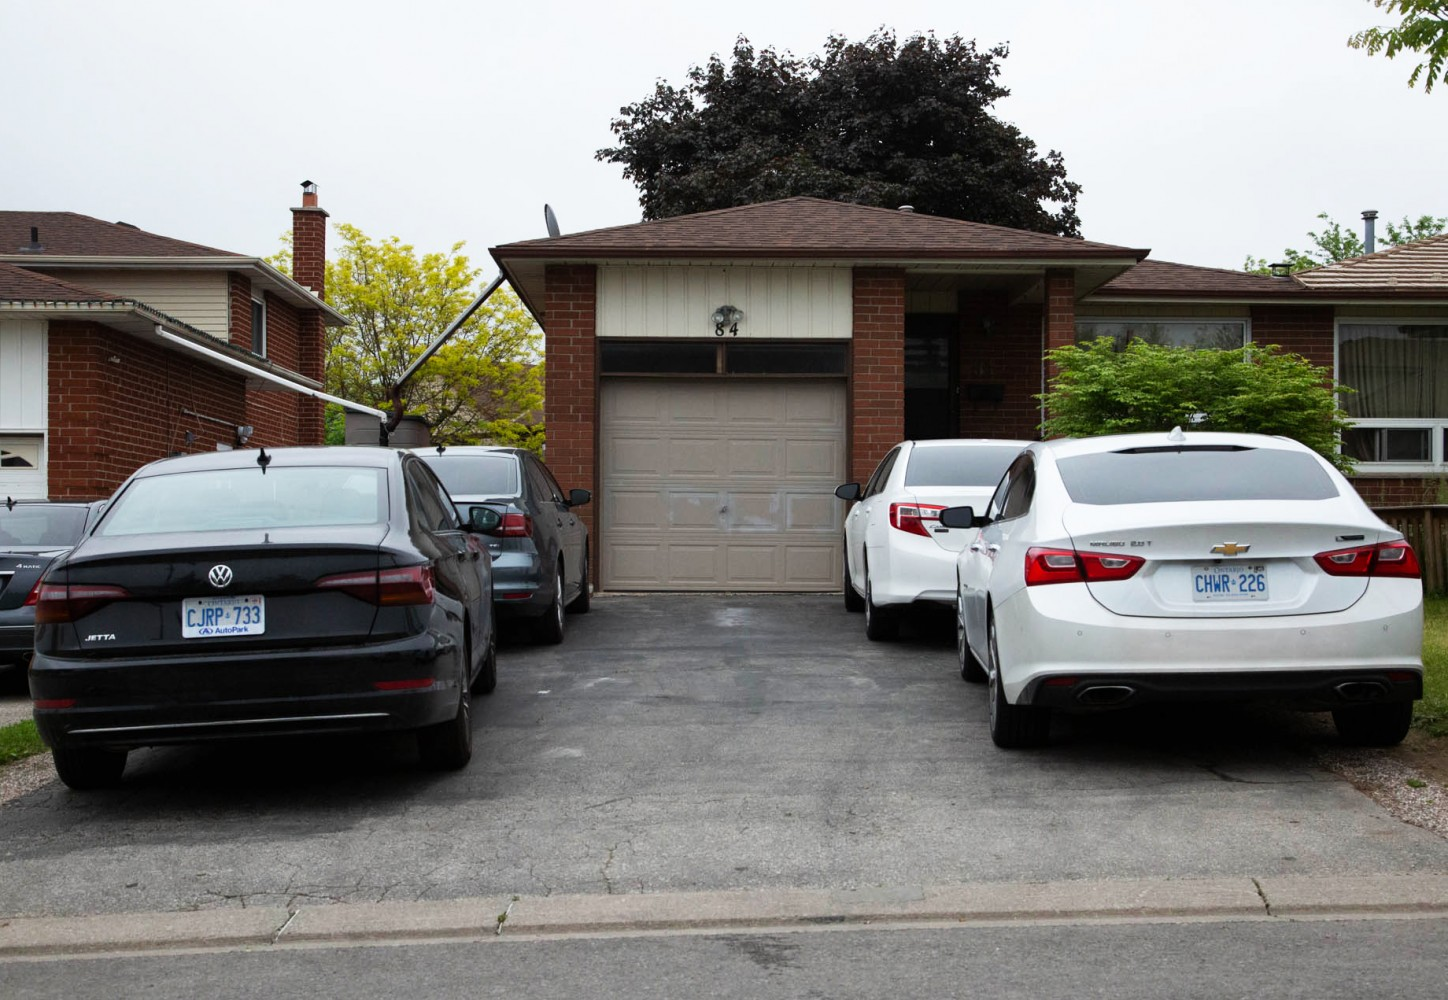 Cars piling up on Brampton lawns and driveways forces city to act